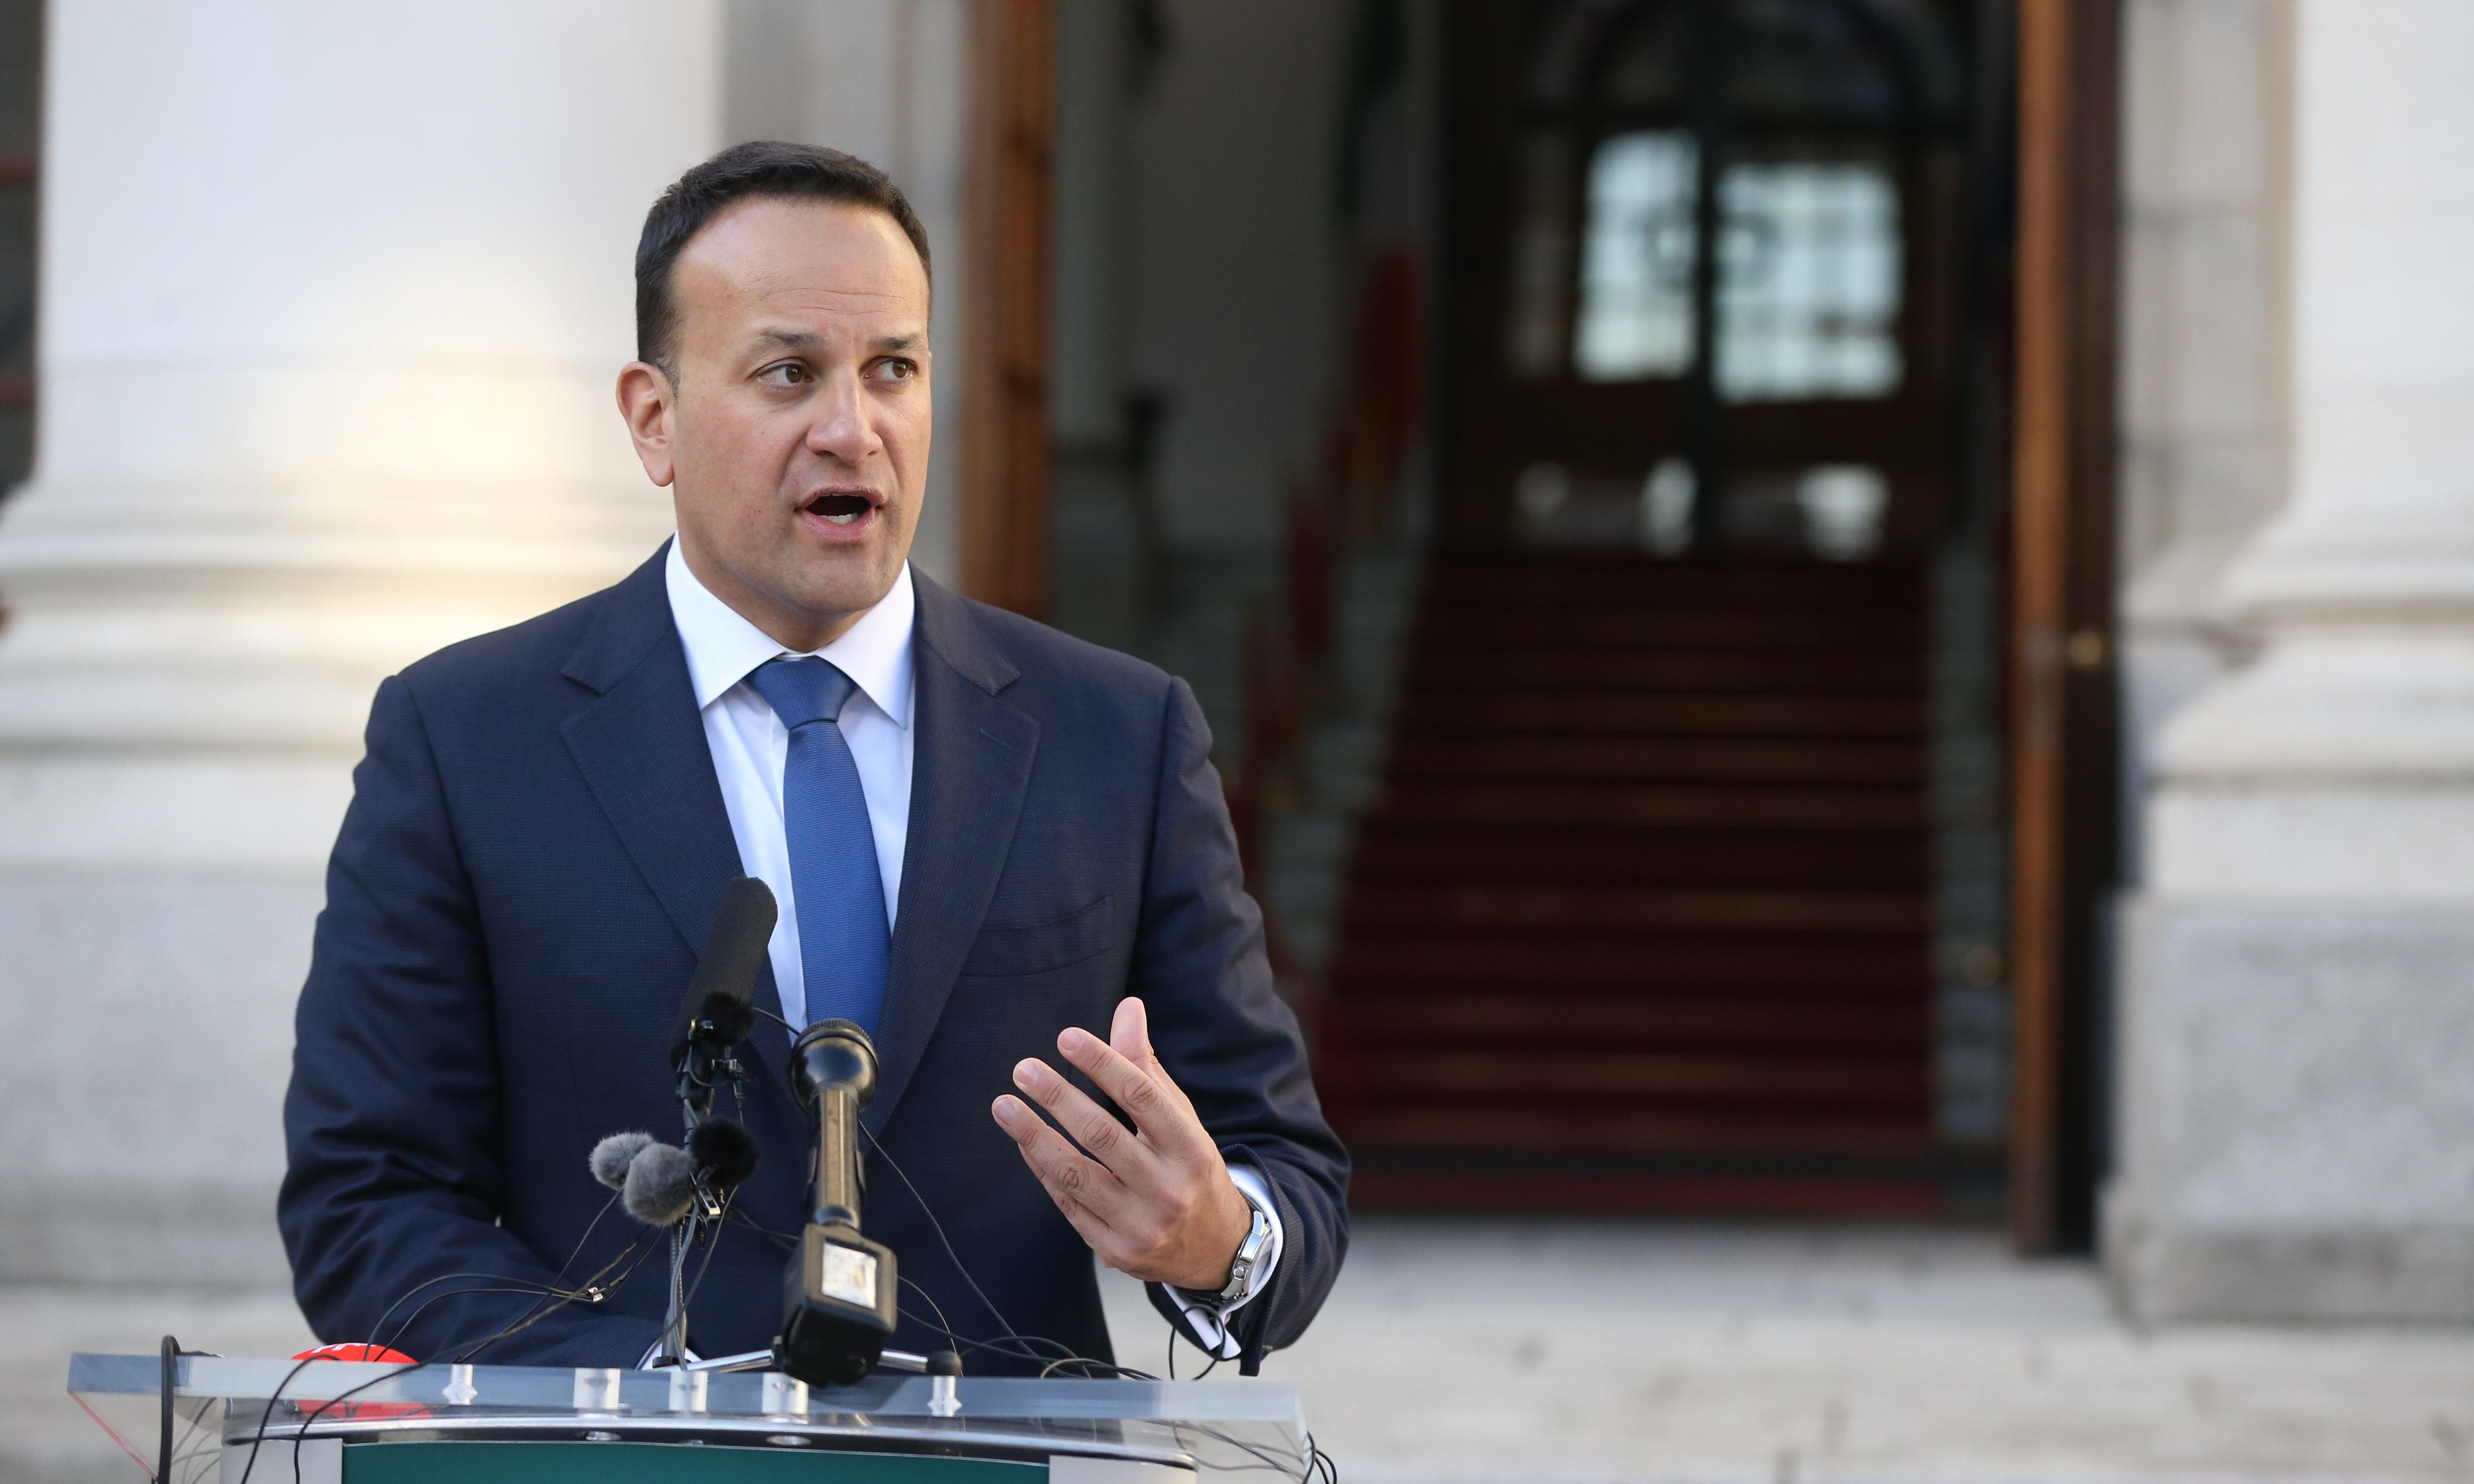 Irish PM tells UK: only bilateral deal would prevent post-Brexit hard border